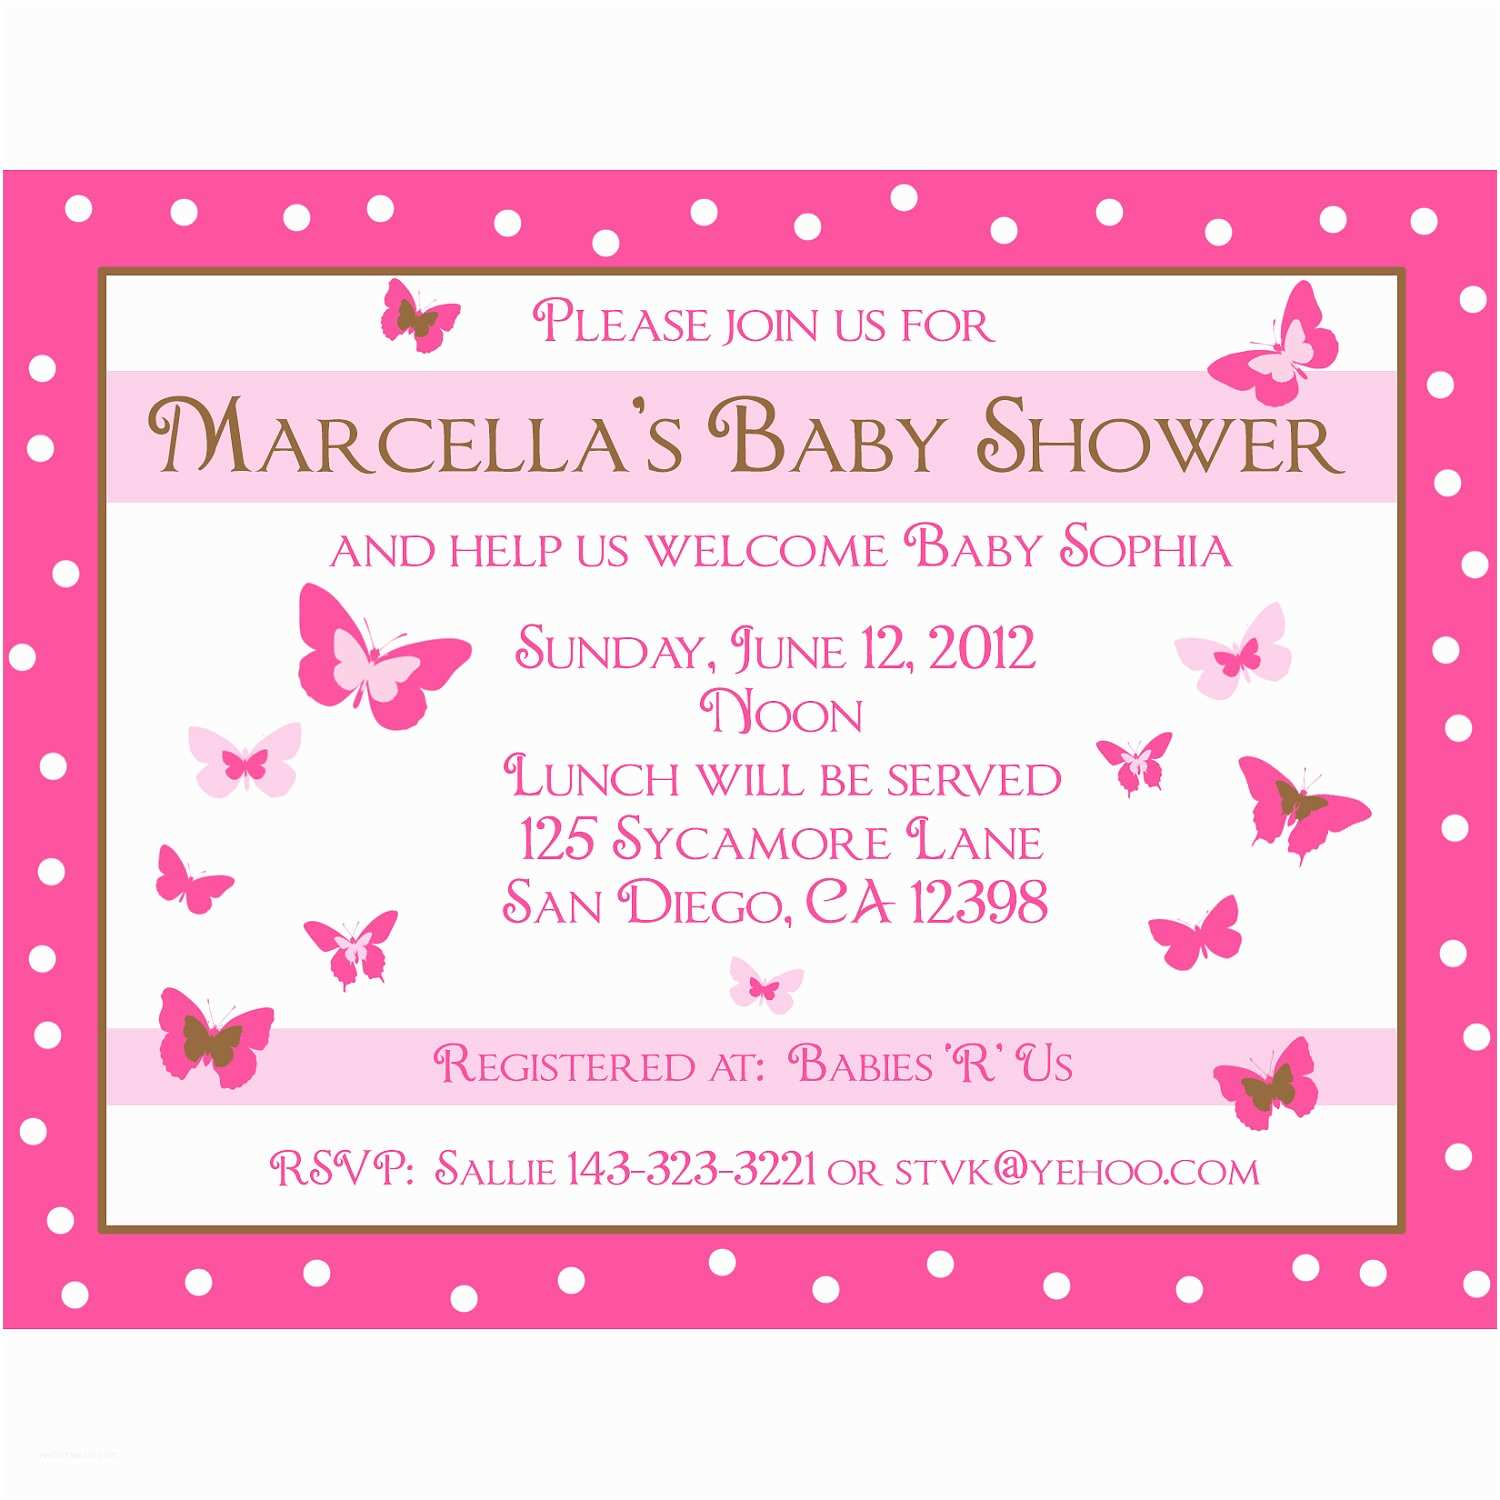 Personalized Baby Shower Invitations 20 Personalized Baby Shower Invitations Pink butterfly